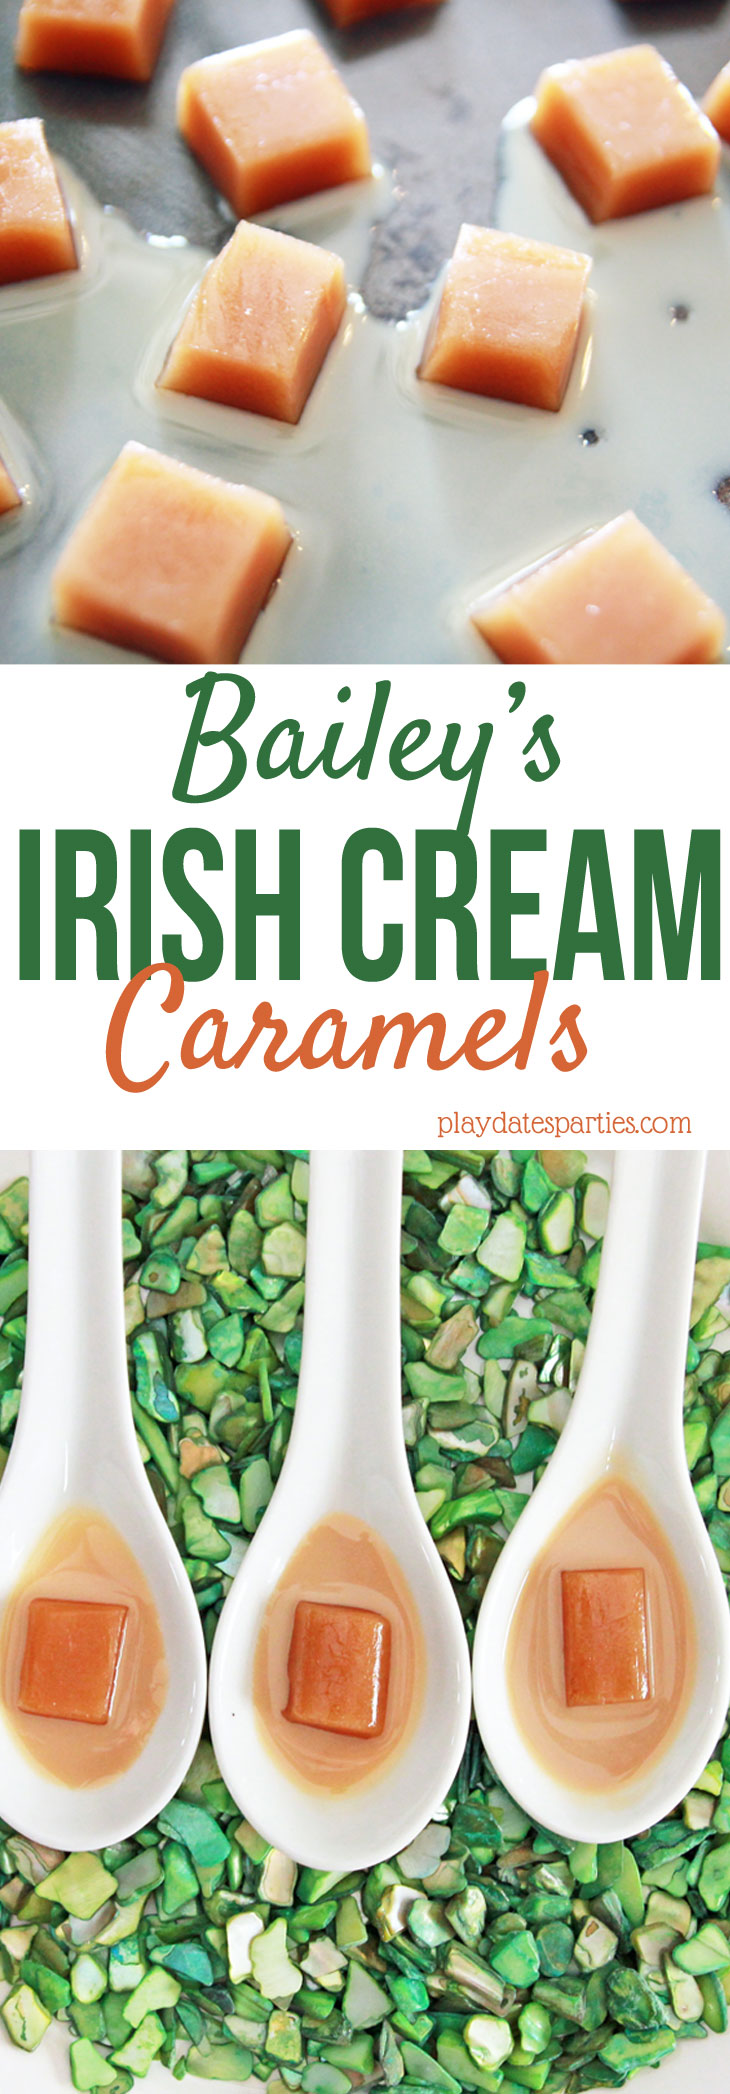 Looking for an AMAZING candy for your holiday get-together? Make a batch of this Bailey's Irish Cream caramels recipe and enjoy a grown up version of this classic candy.